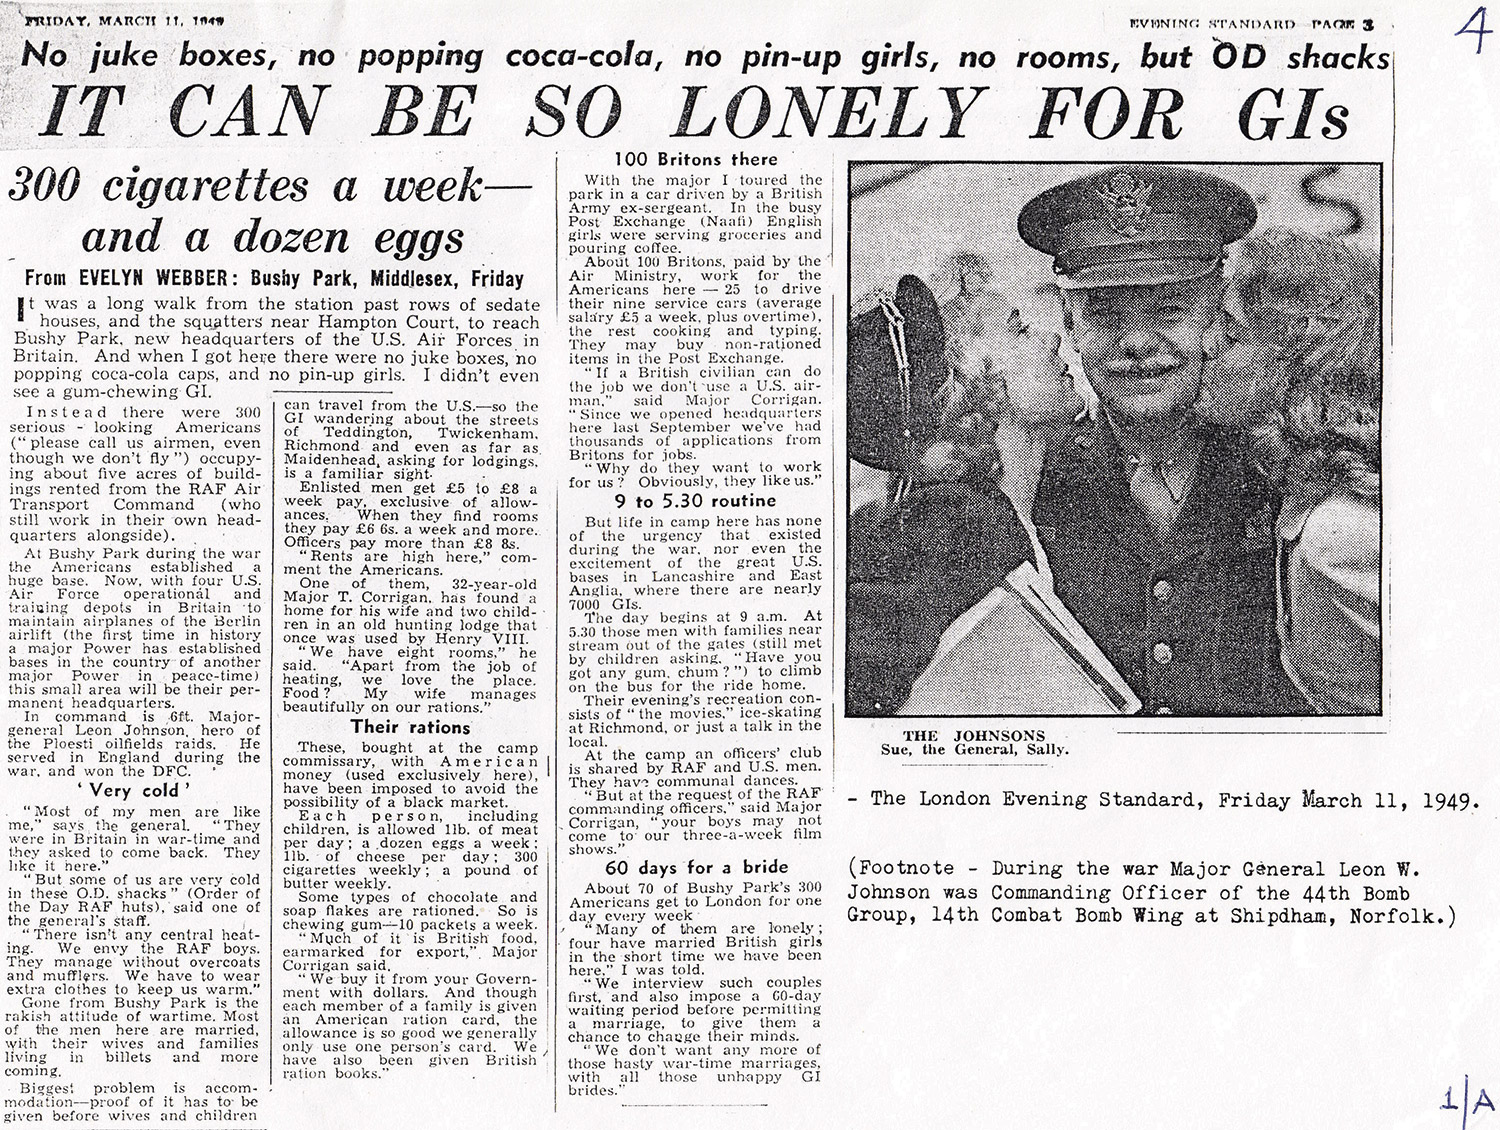 Article about US troops marrying UK citizens